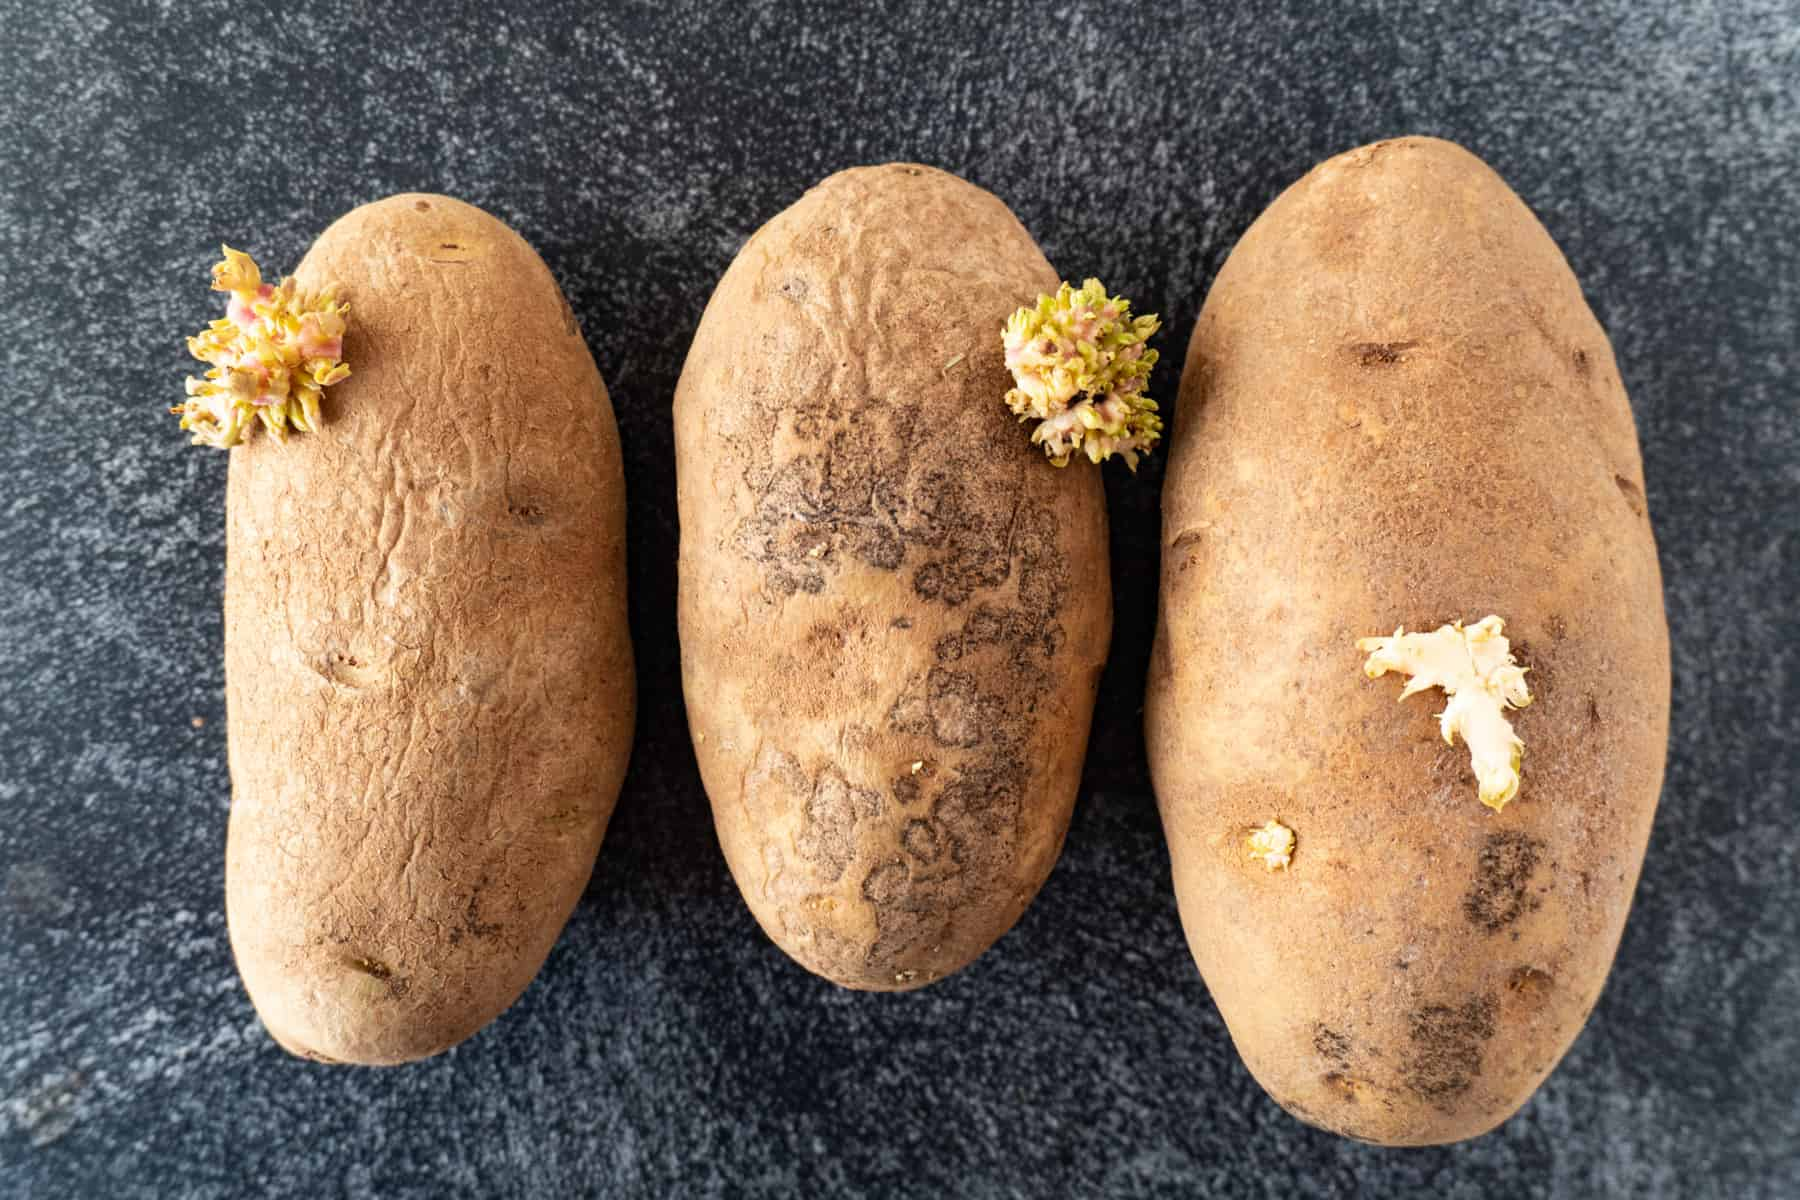 three russet potatoes with sprouts